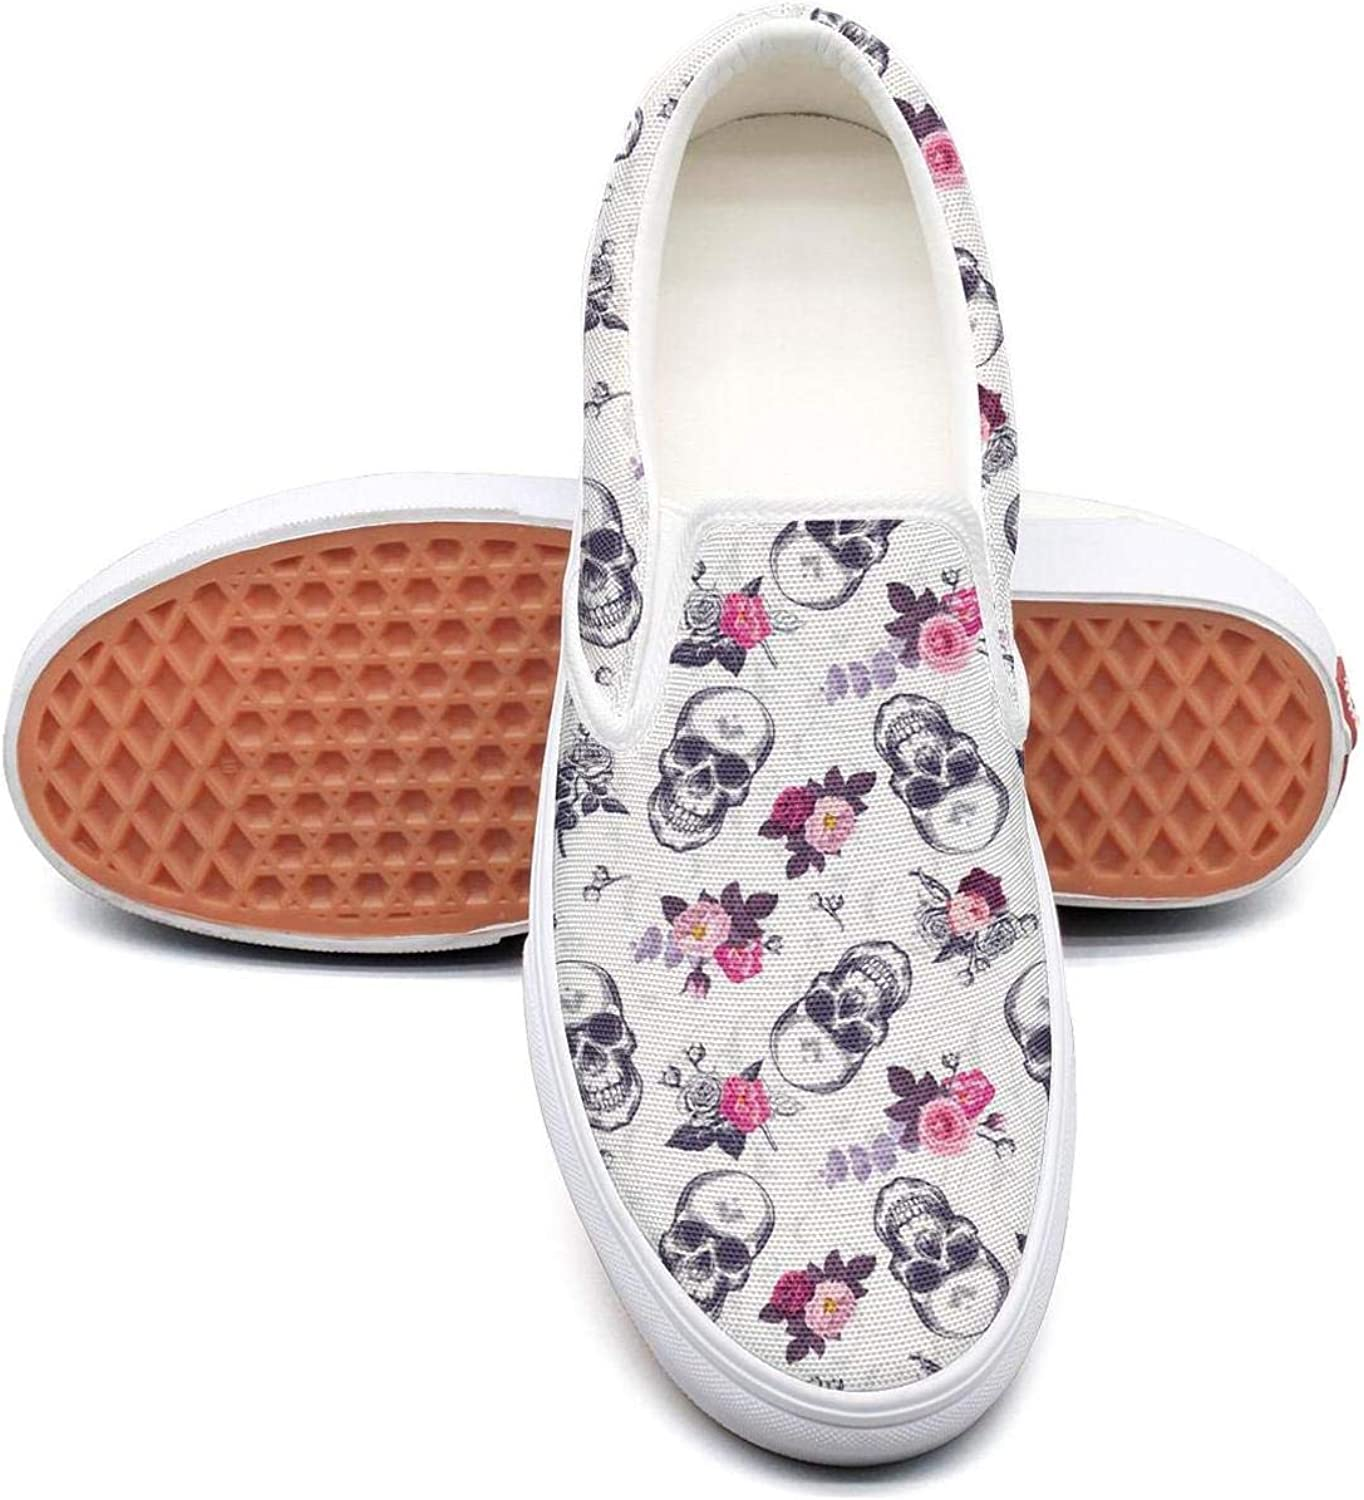 Skull with Flowers (5) Slip On Superior Comfort Sneakers Canvas shoes for Women Fashion